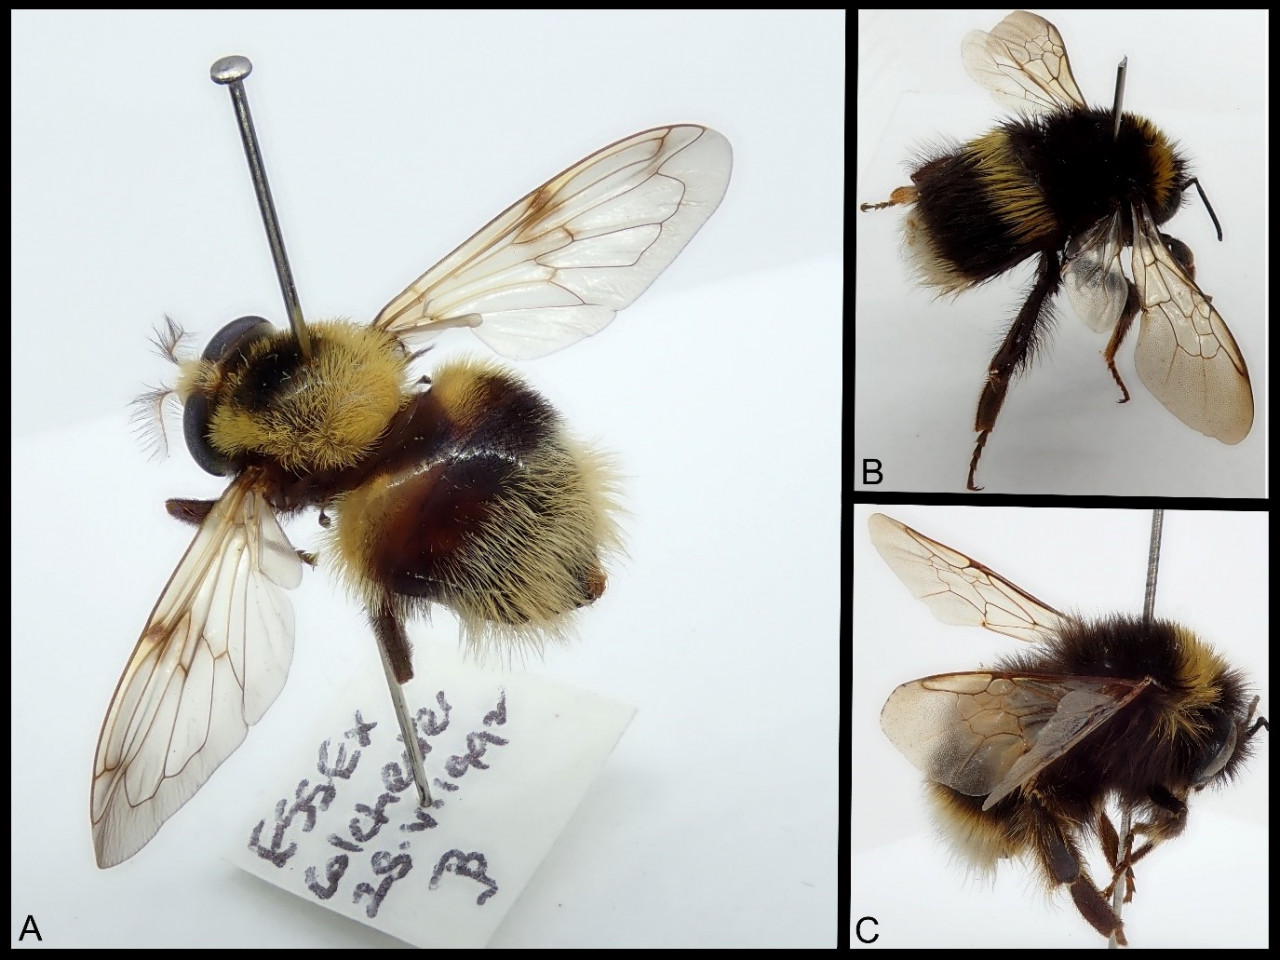 A composite image of three photos, on the left is a photo of a bumblebee hoverfly, on the top right a photo of a white-tailed bumblebee and bottom right a buff-tailed bumblebee.